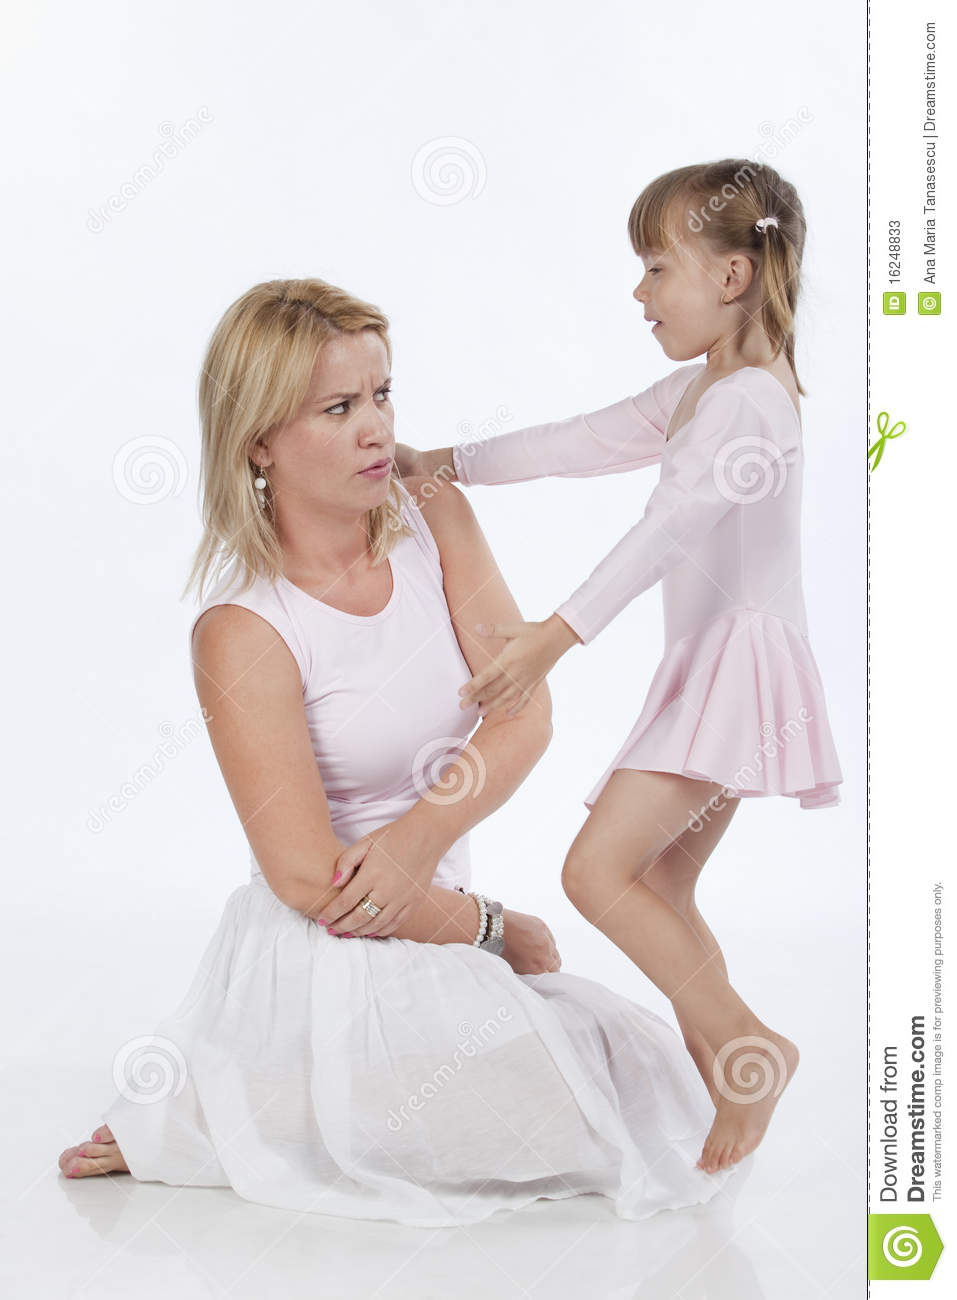 ... portrait of two persons, mother and daughter, arguing, studio image